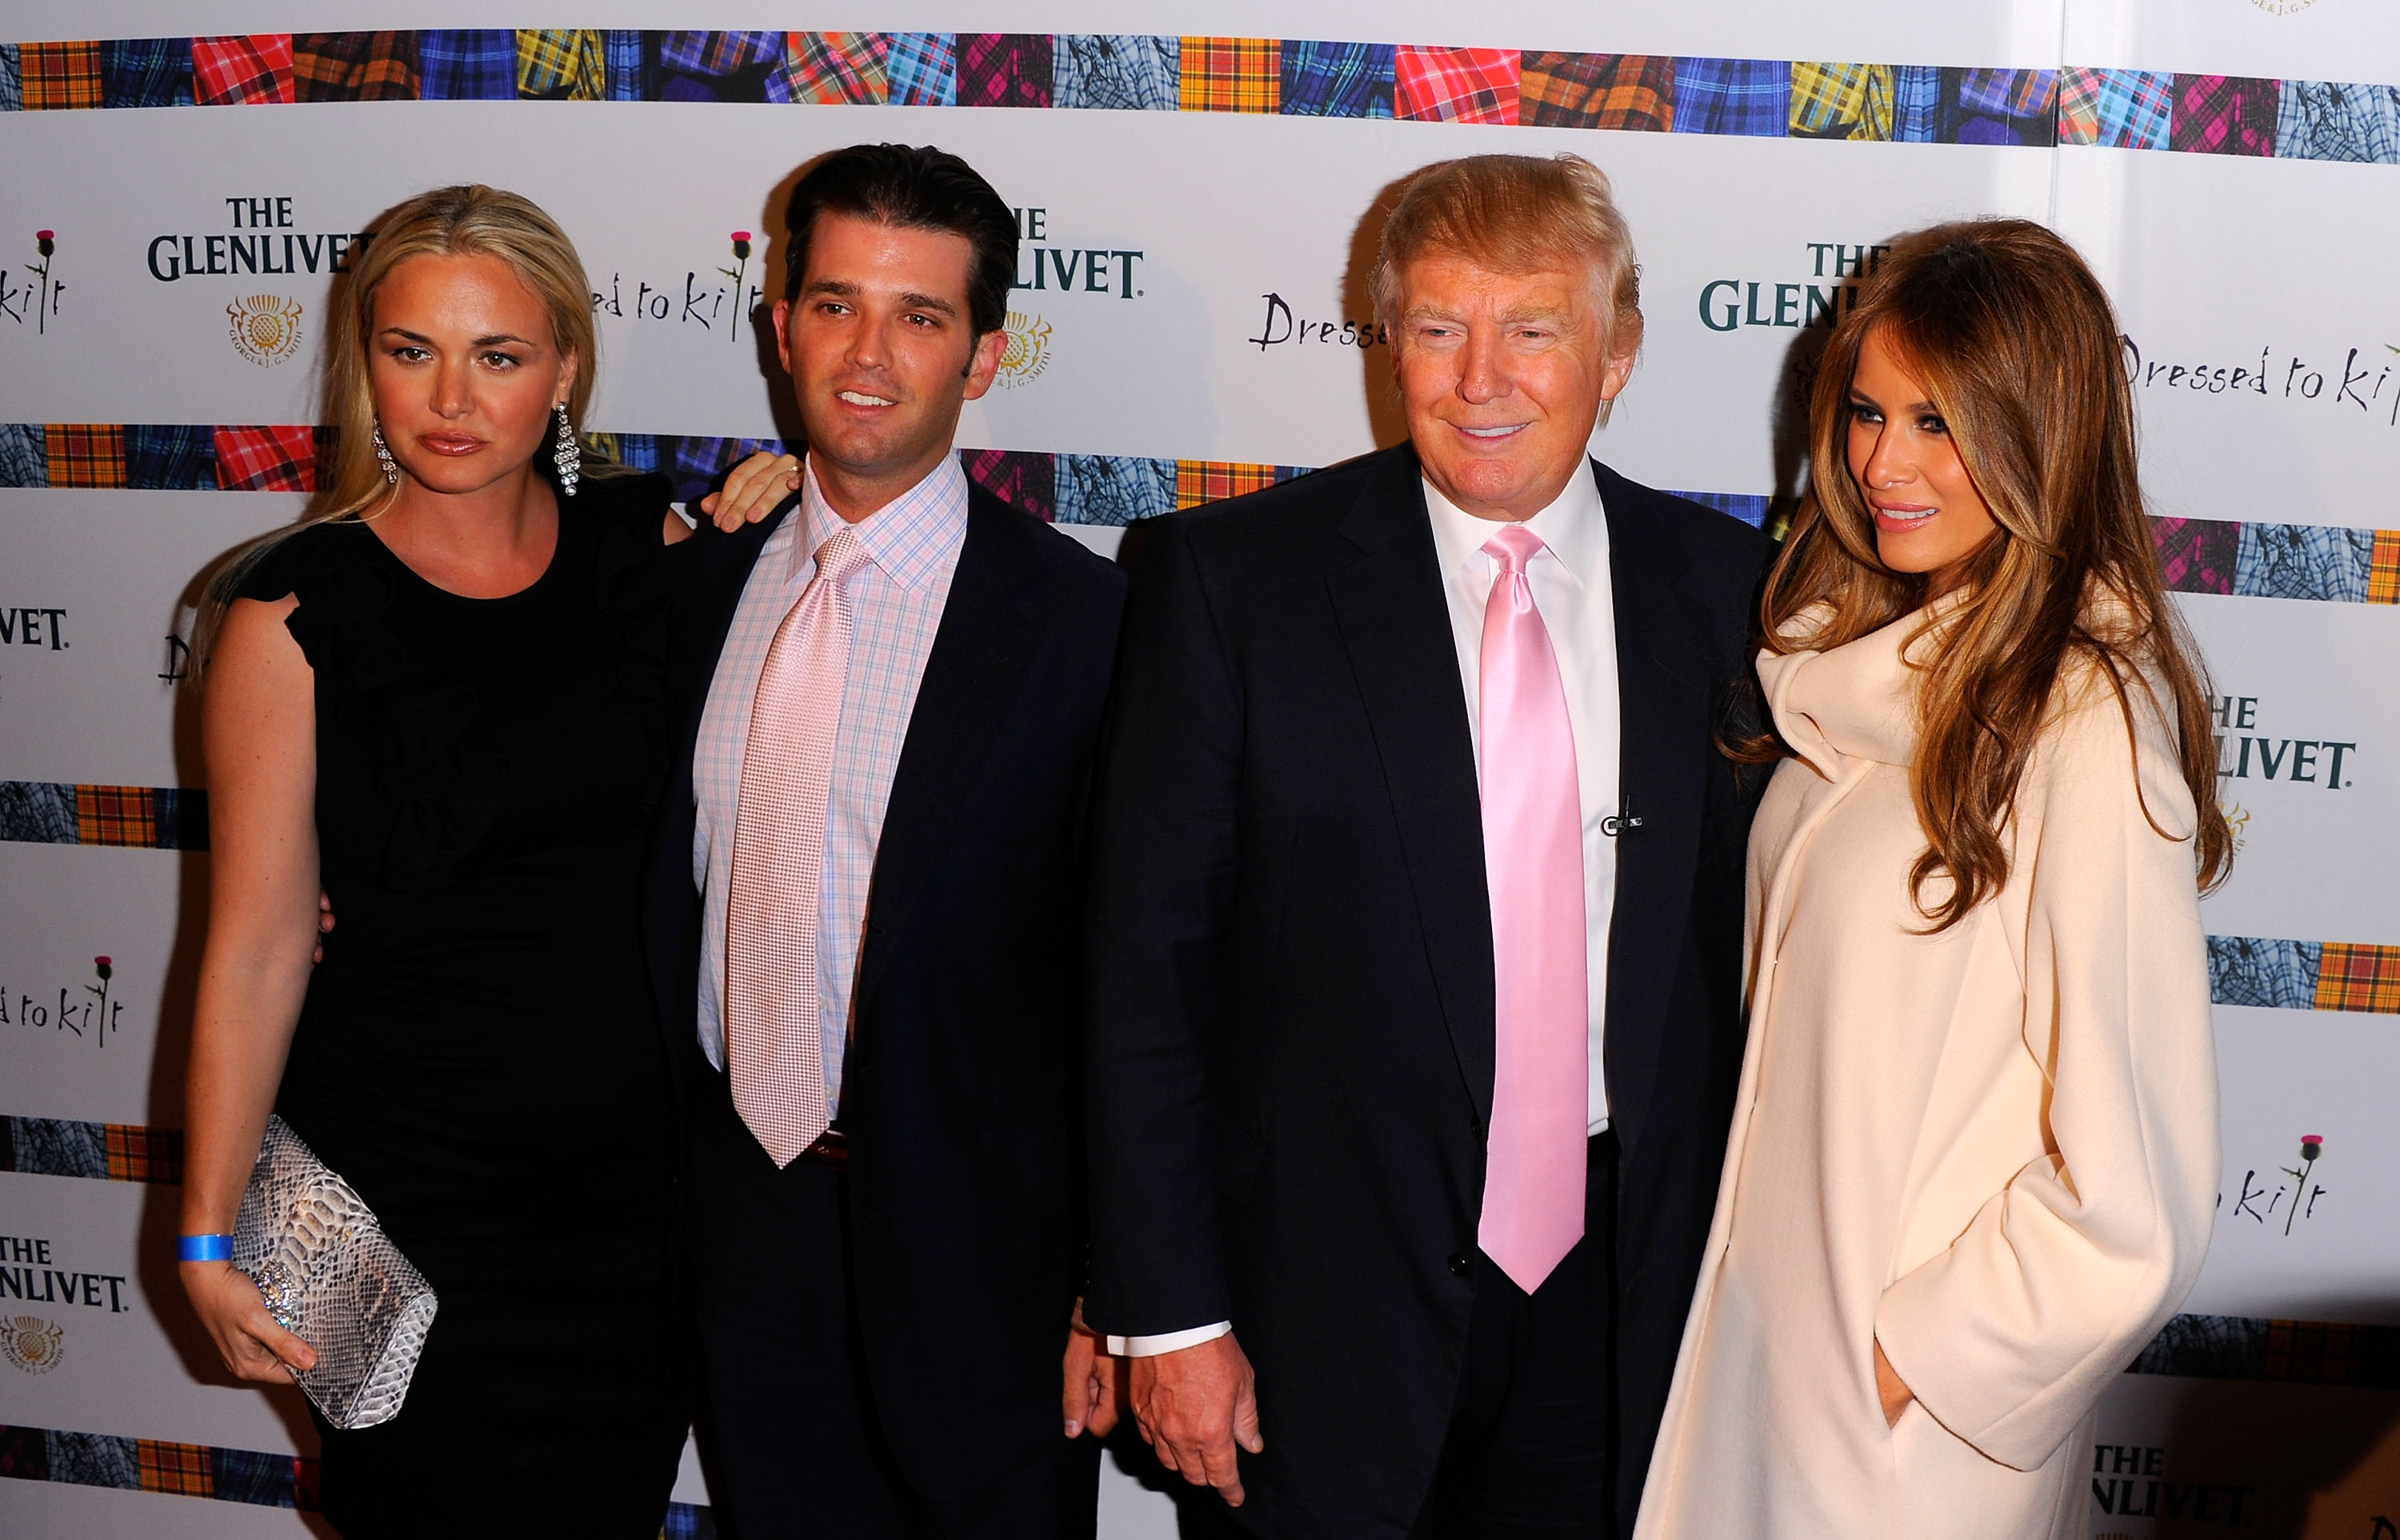 Donald Trump Jr. reportedly had affair with Aubrey O'Day